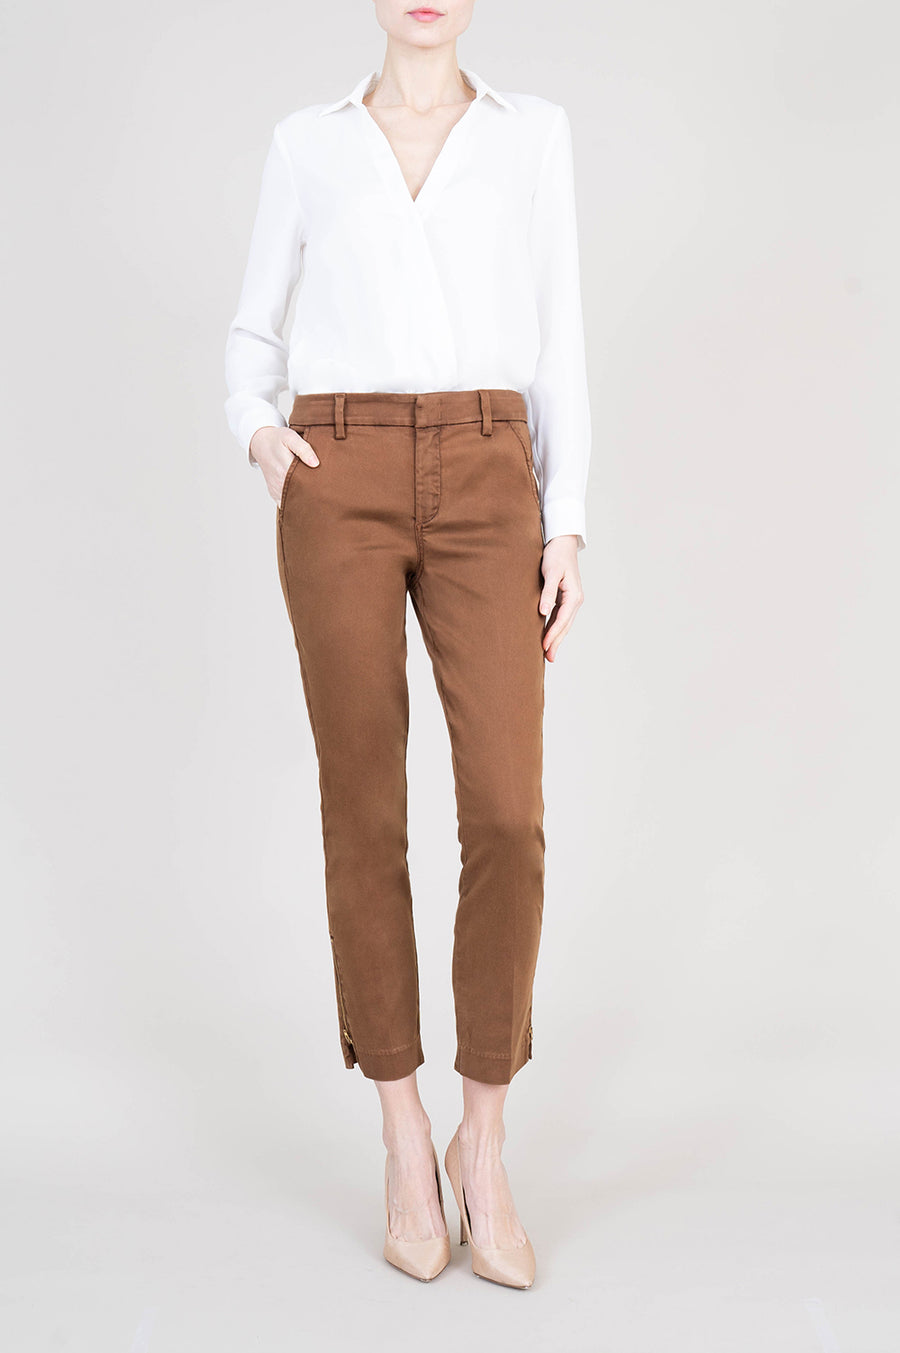 Brittany Zipper Hem Trouser - level99jeans